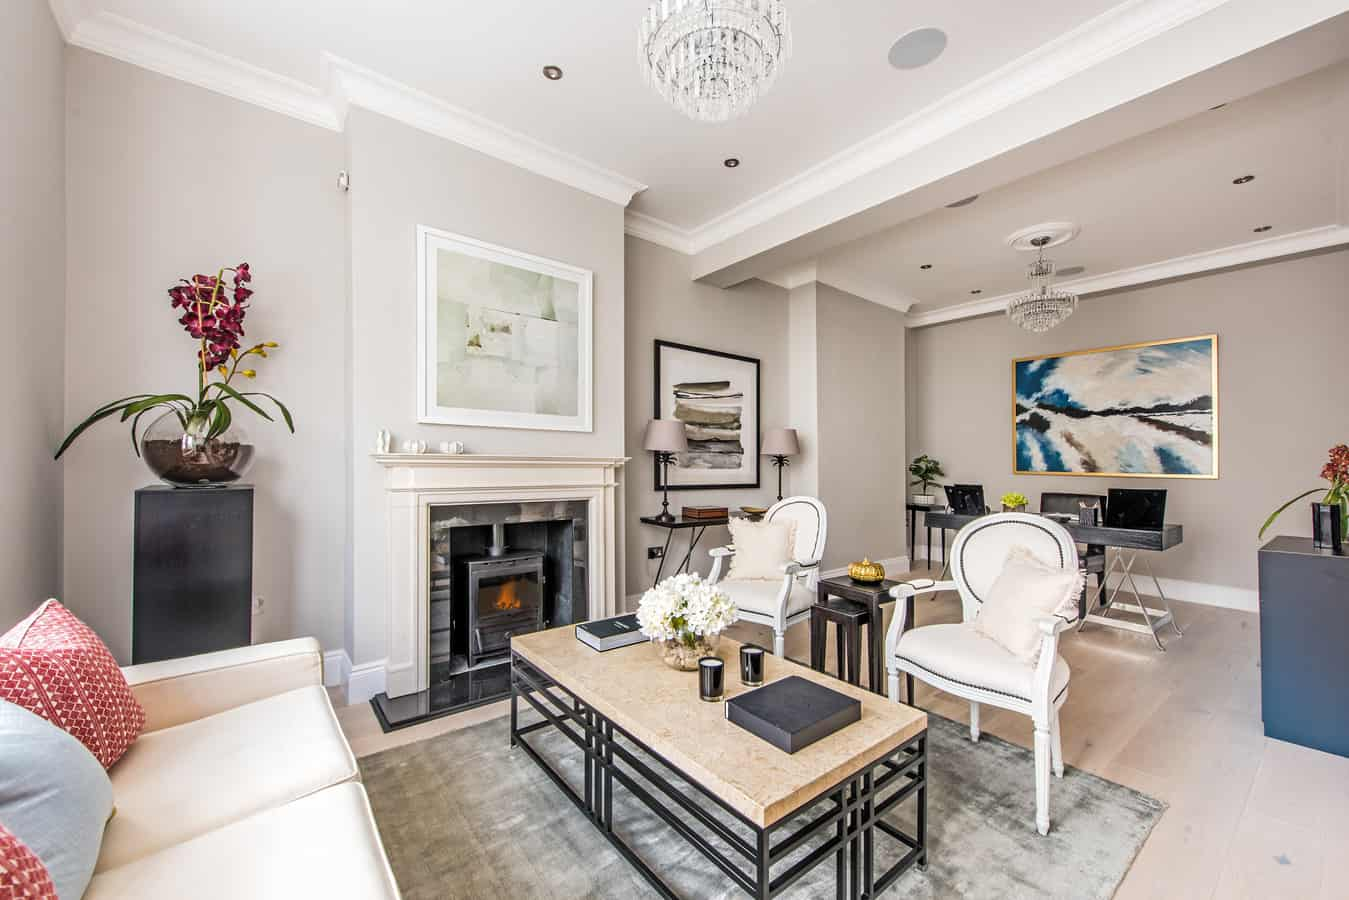 Finlay-Street-home-staged-by-cullum-design-london-uk-56-31